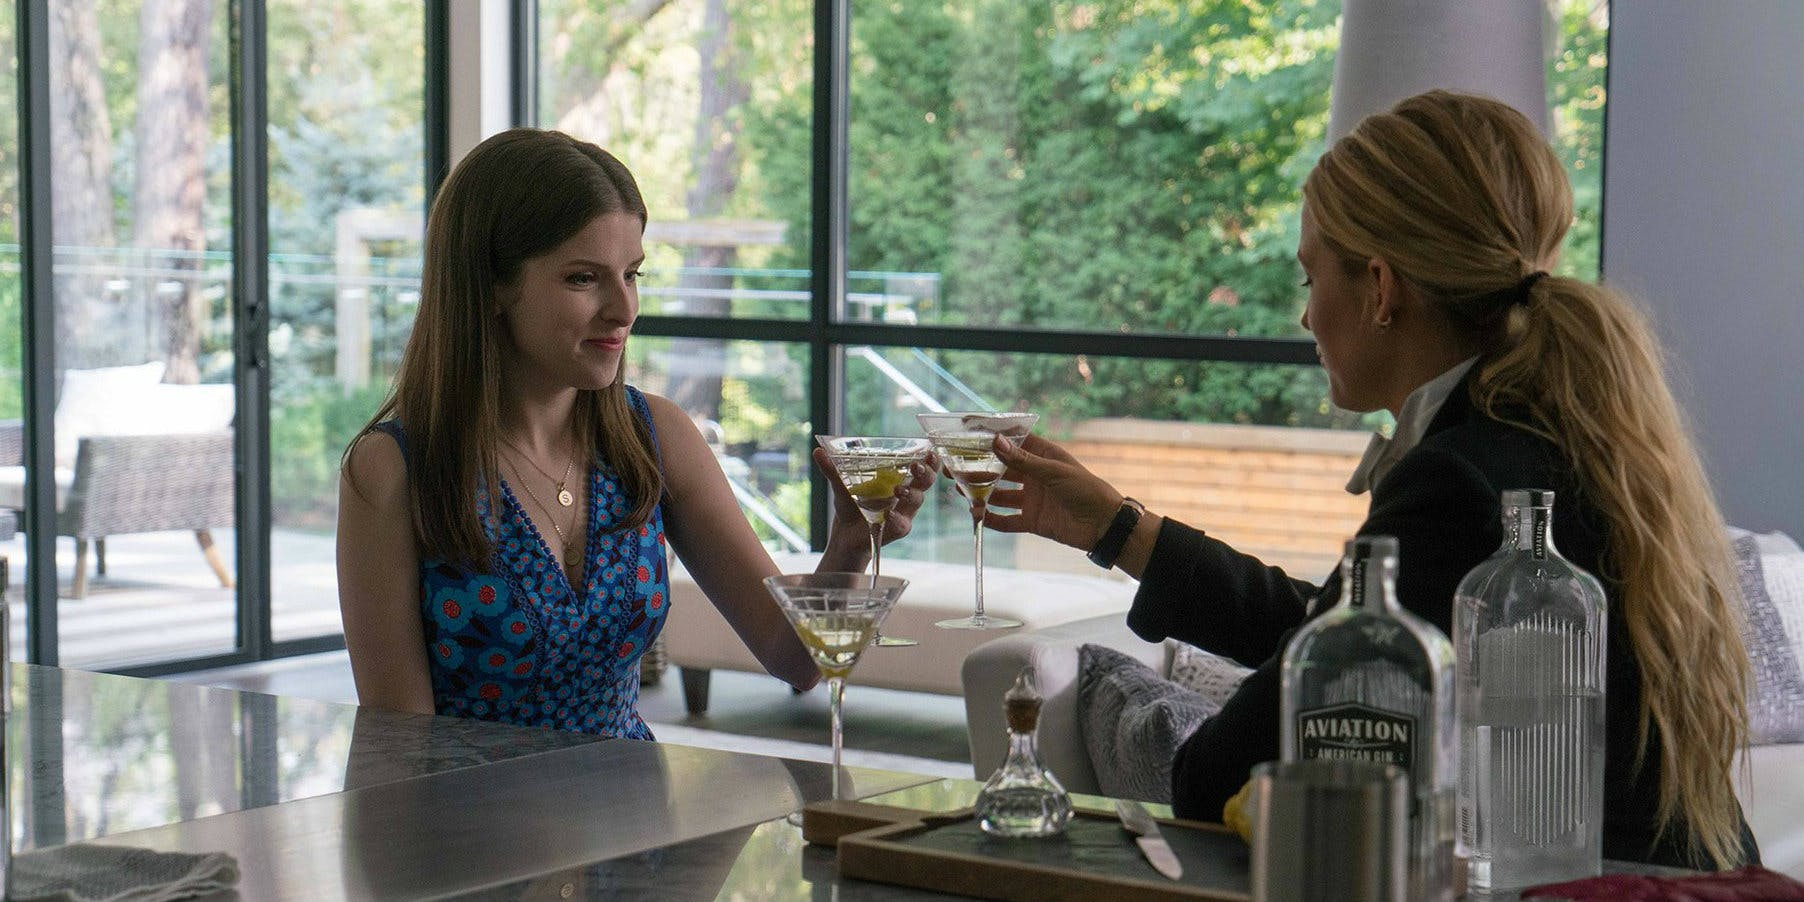 Check out the official teaser trailer for A Simple Favour